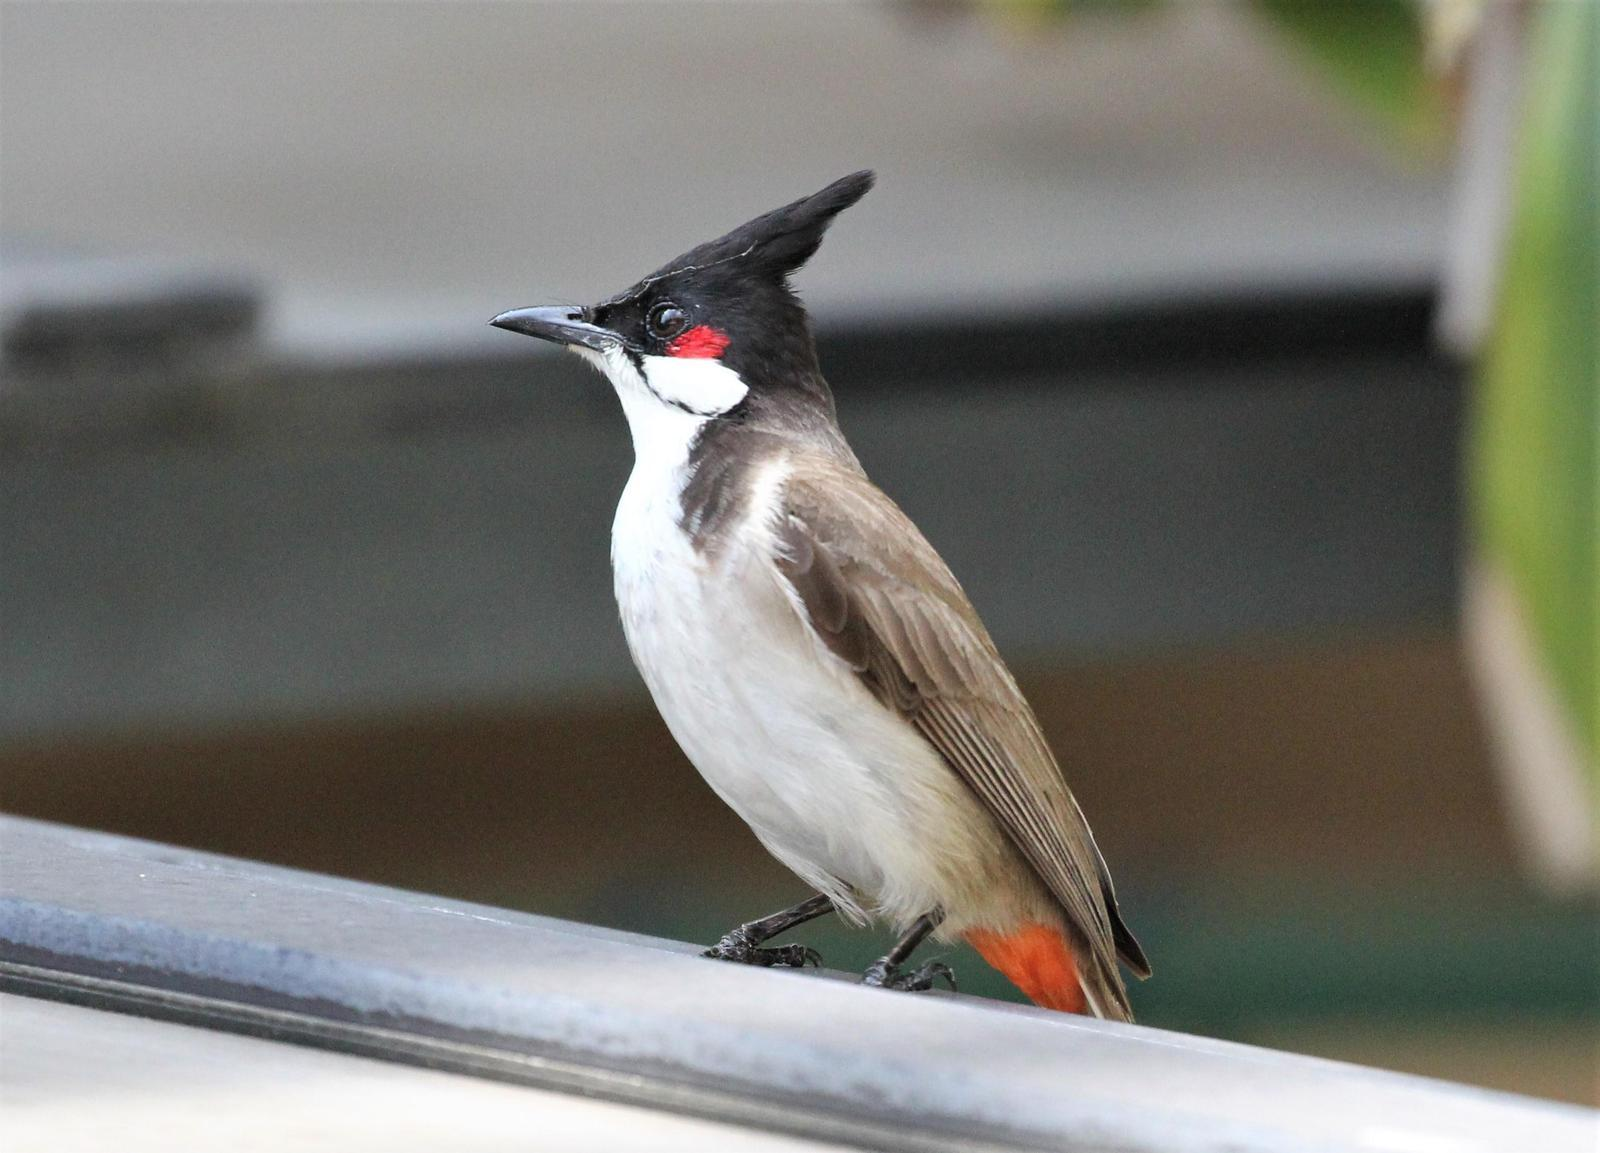 Red-whiskered Bulbul Photo by Steven Cheong